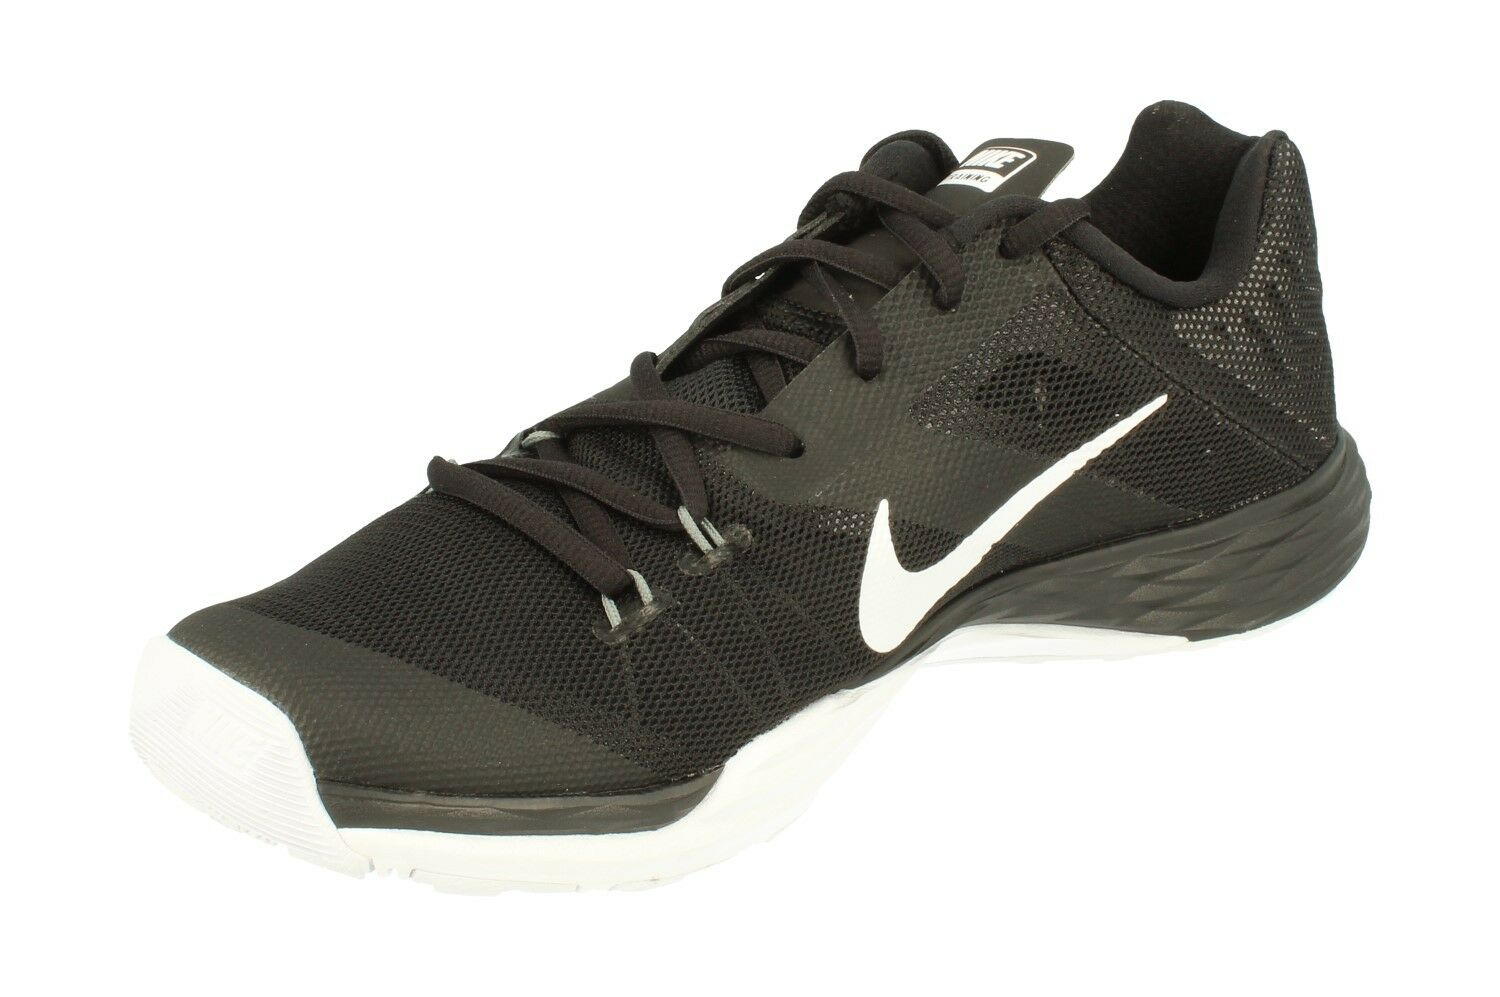 Nike Trainers Train Prime Iron DF Hommes Running Trainers Nike 832219 001 Baskets Chaussures 0cbfb6